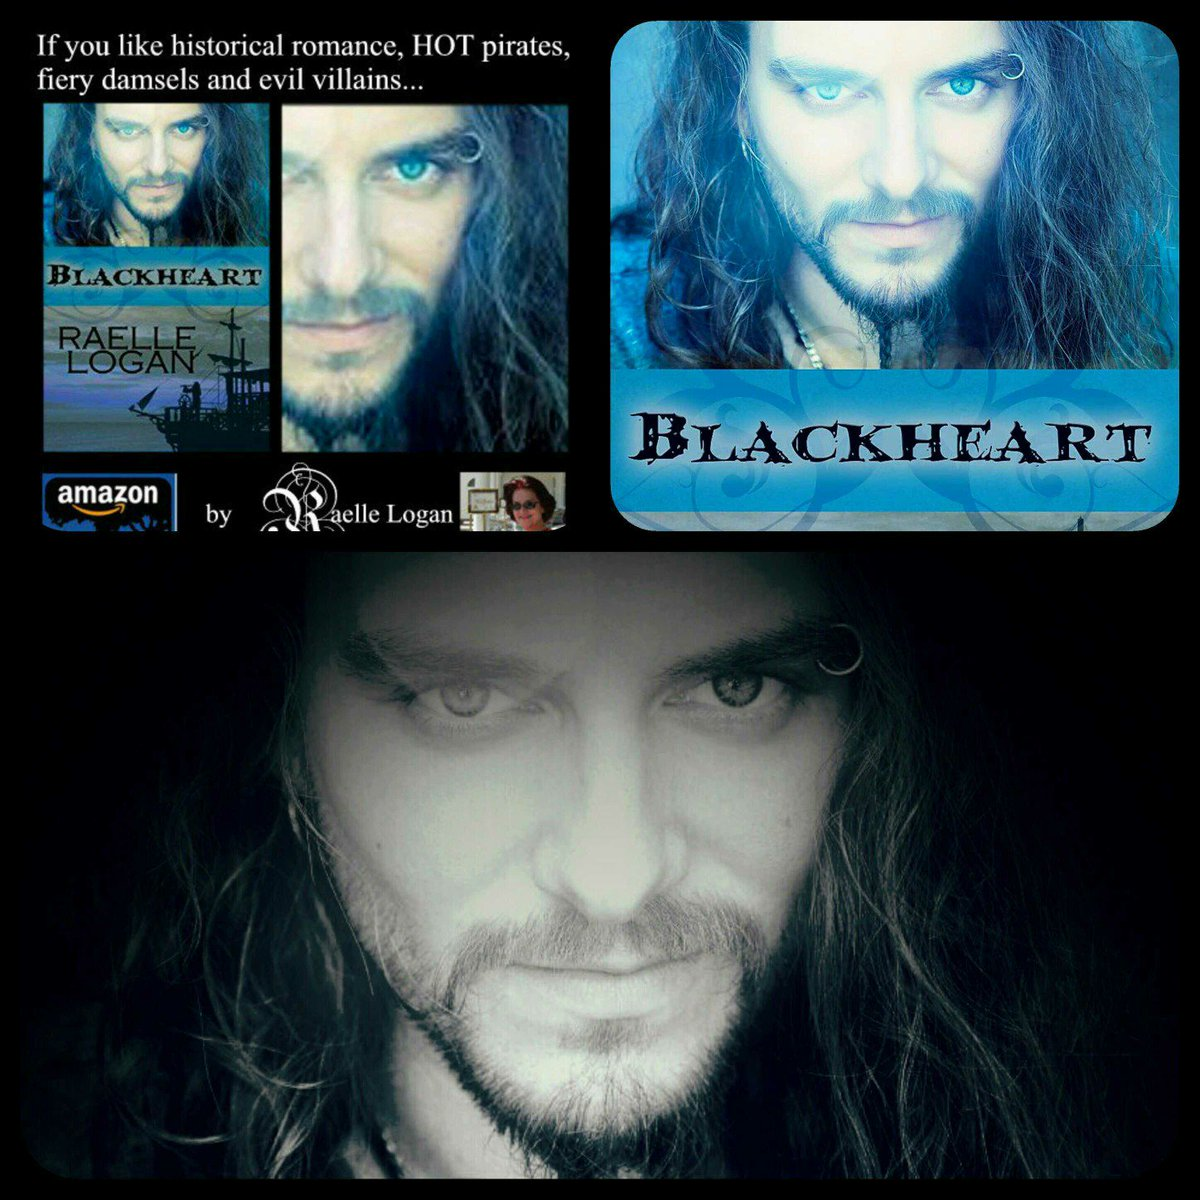 Tall, Dark, Handsome, Rogue! #Readers #romance #gamedev #books #love #booklovers #greatreads #RomanceReaders #weekendread #coffee #fiction<br>http://pic.twitter.com/tB3DMWTAsi